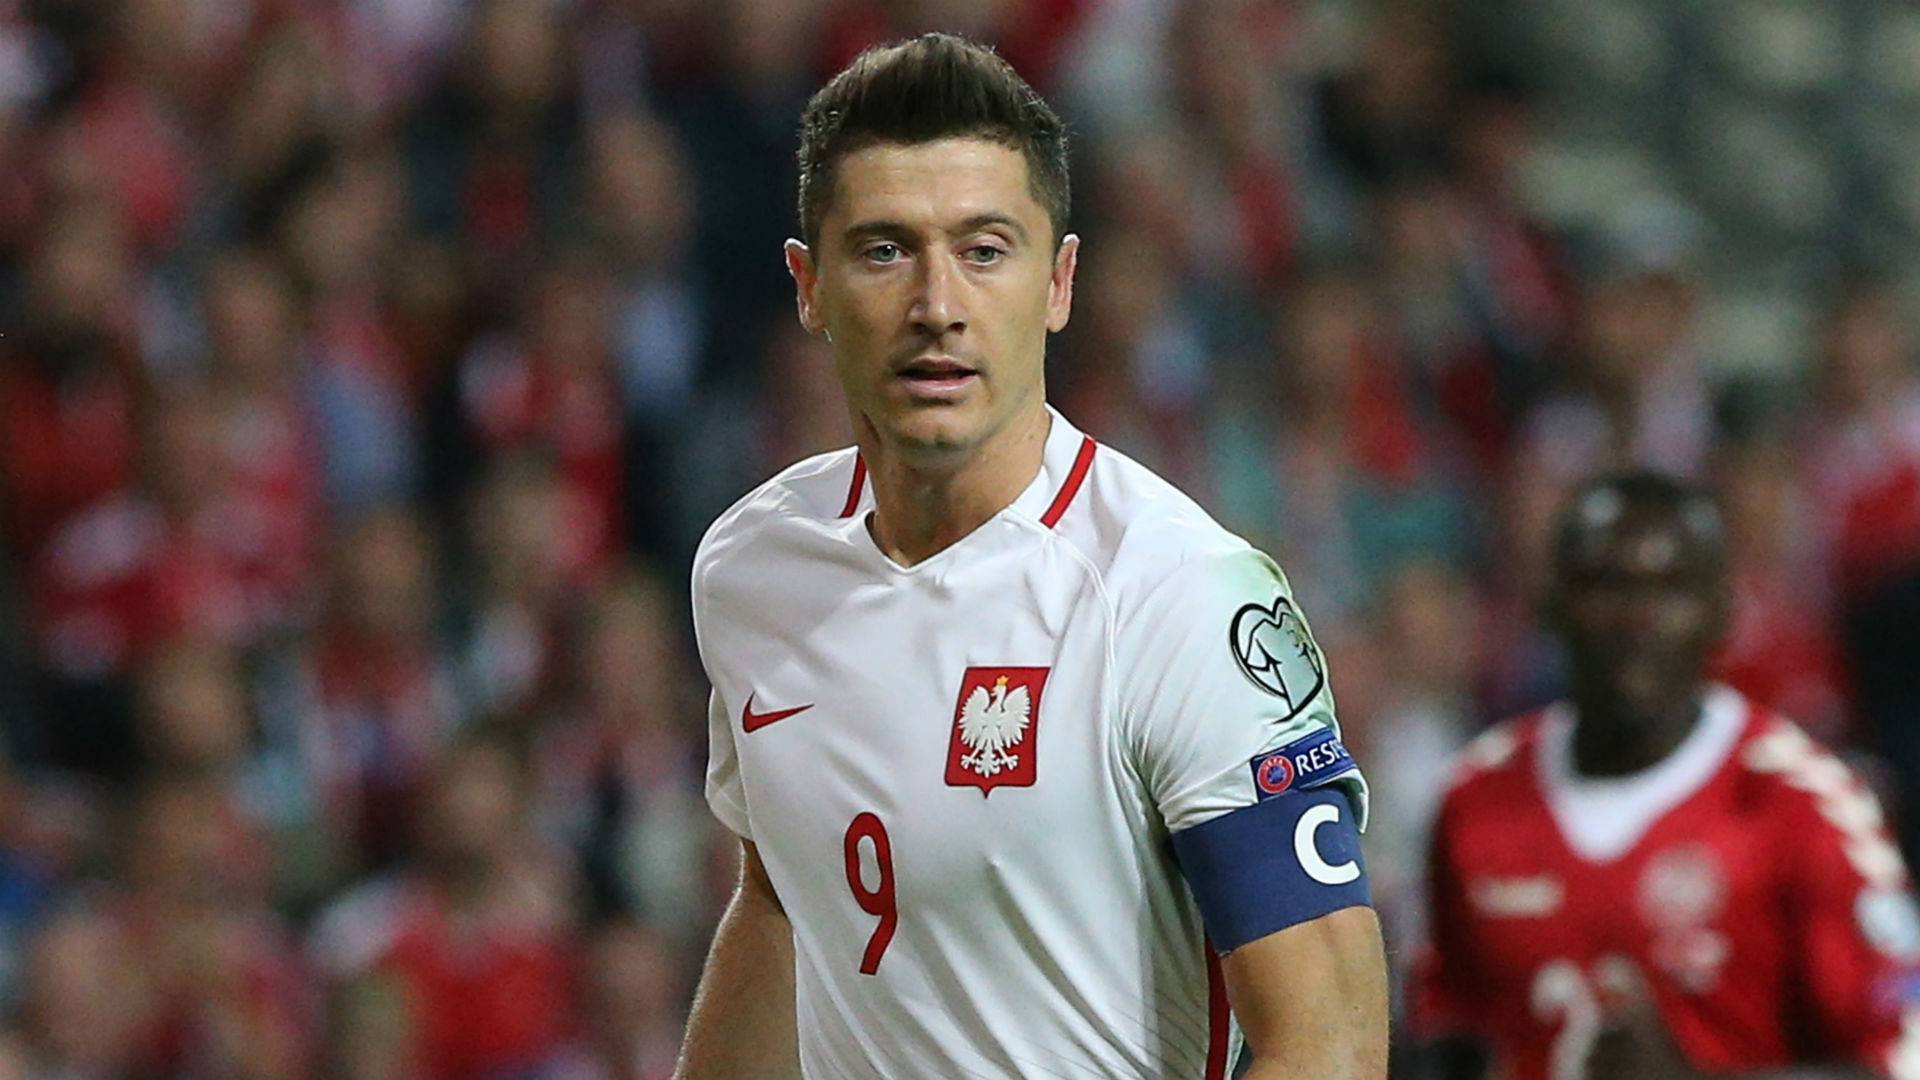 Robert Lewandowski - Poland 'not effective' in loss to Senegal